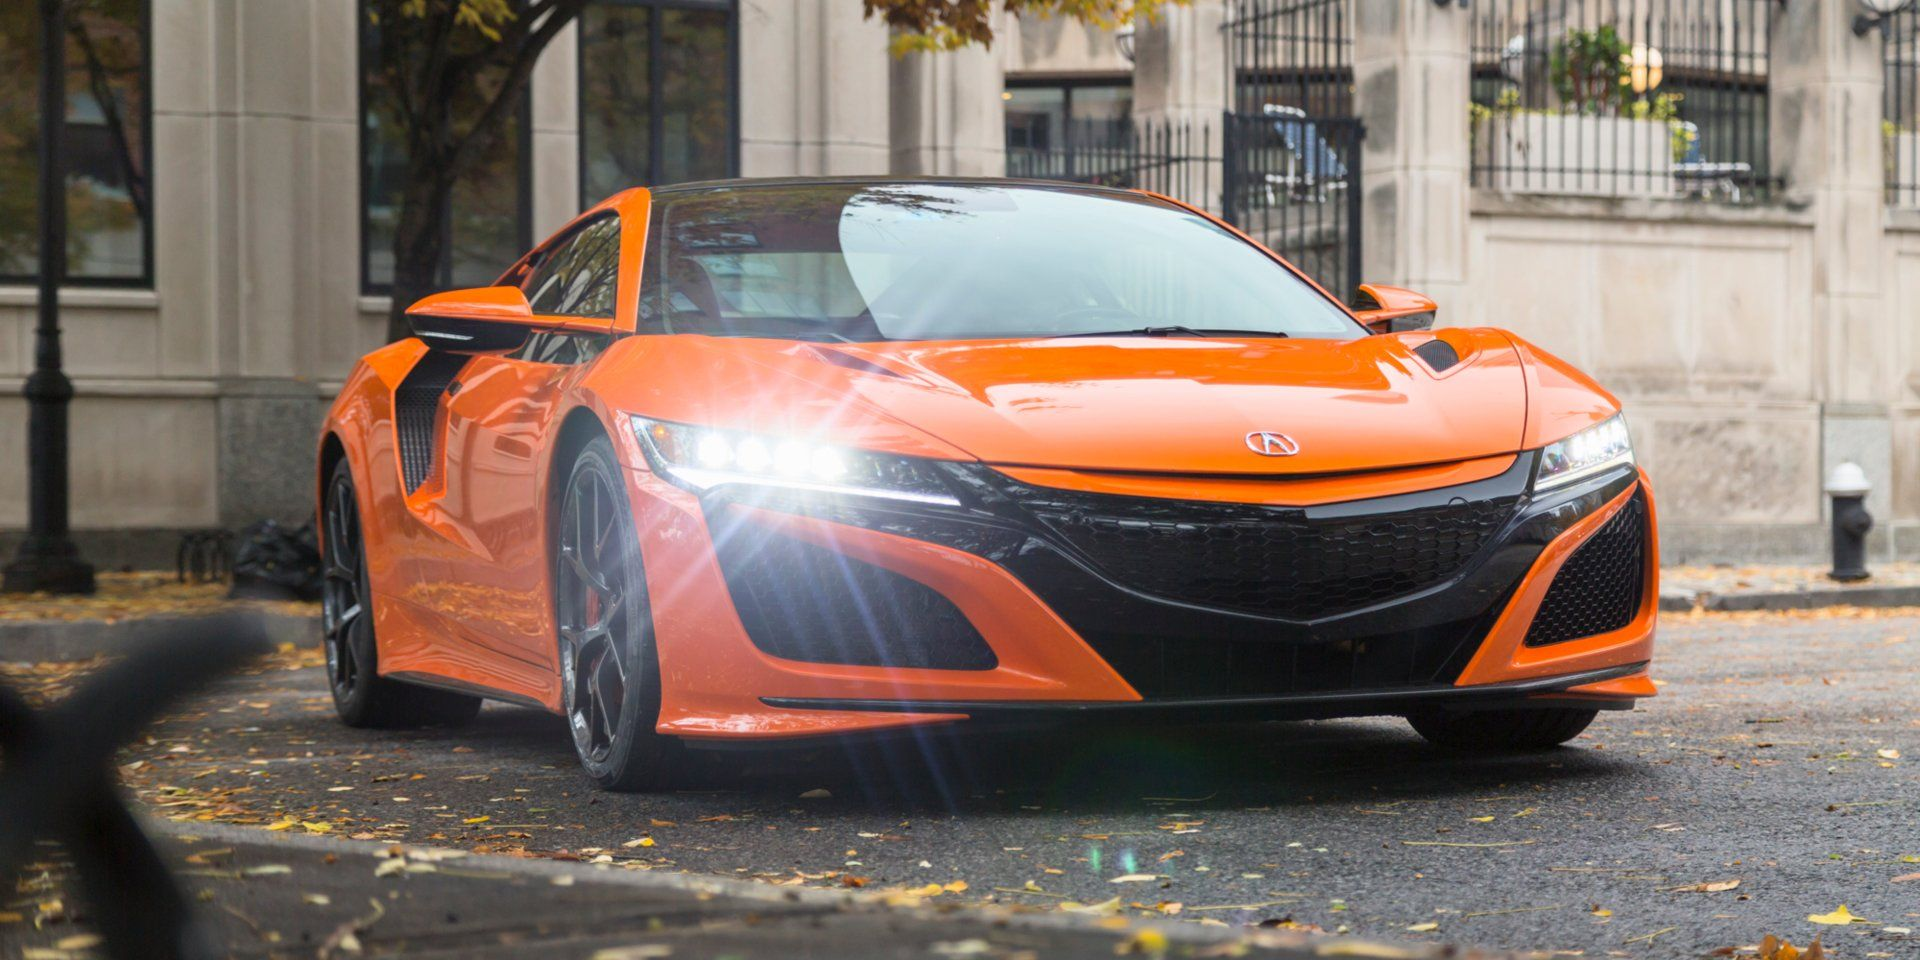 I Drove A 195 000 Acura Nsx To Find Out If The Updated Legend Is The Best Value In Supercars Here S The Verdict Nsx Acura Nsx Expensive Sports Cars